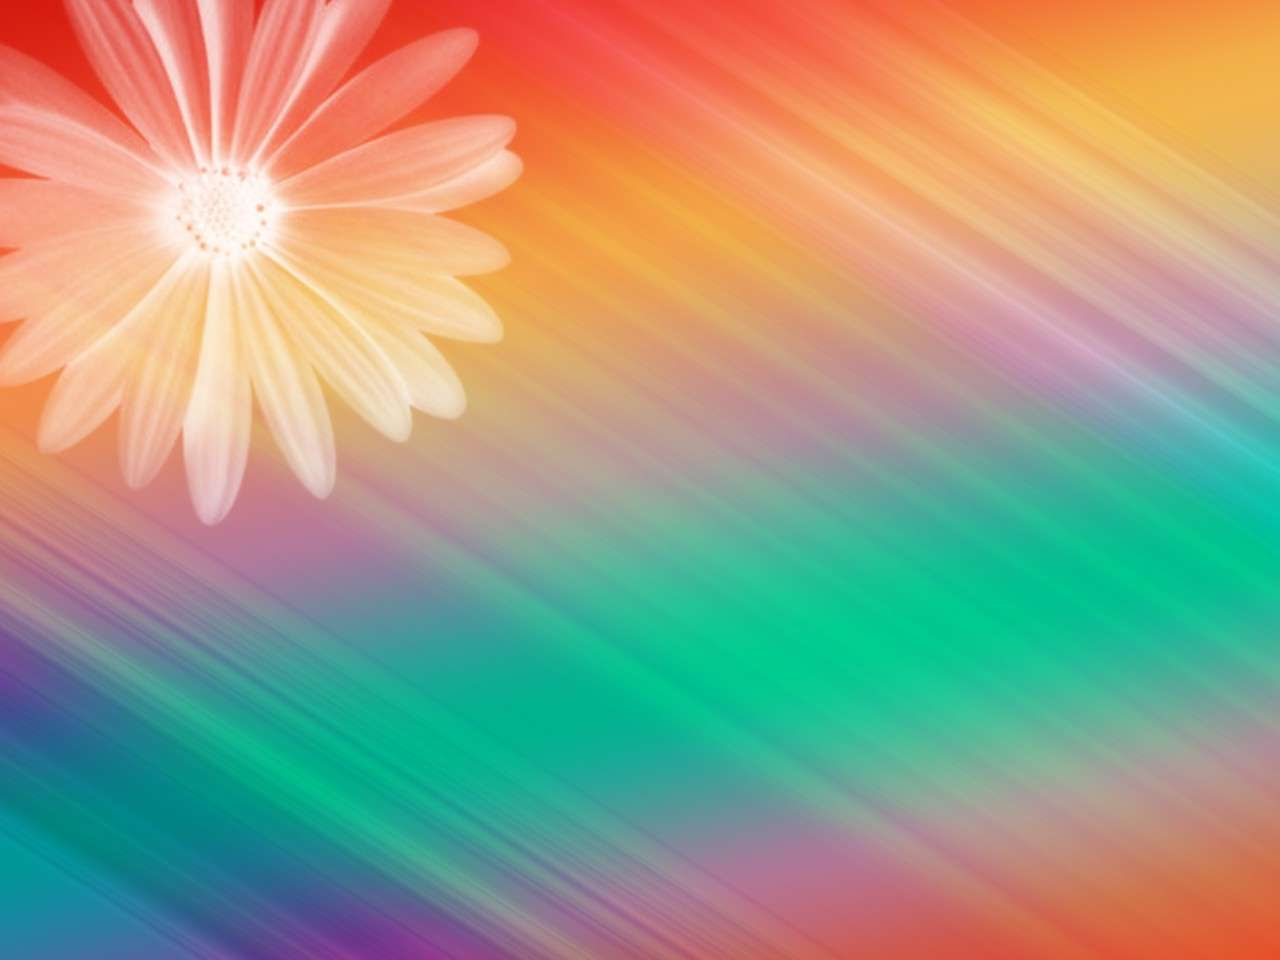 Colorful Backgrounds For Powerpoint   wallpaper 1280x960